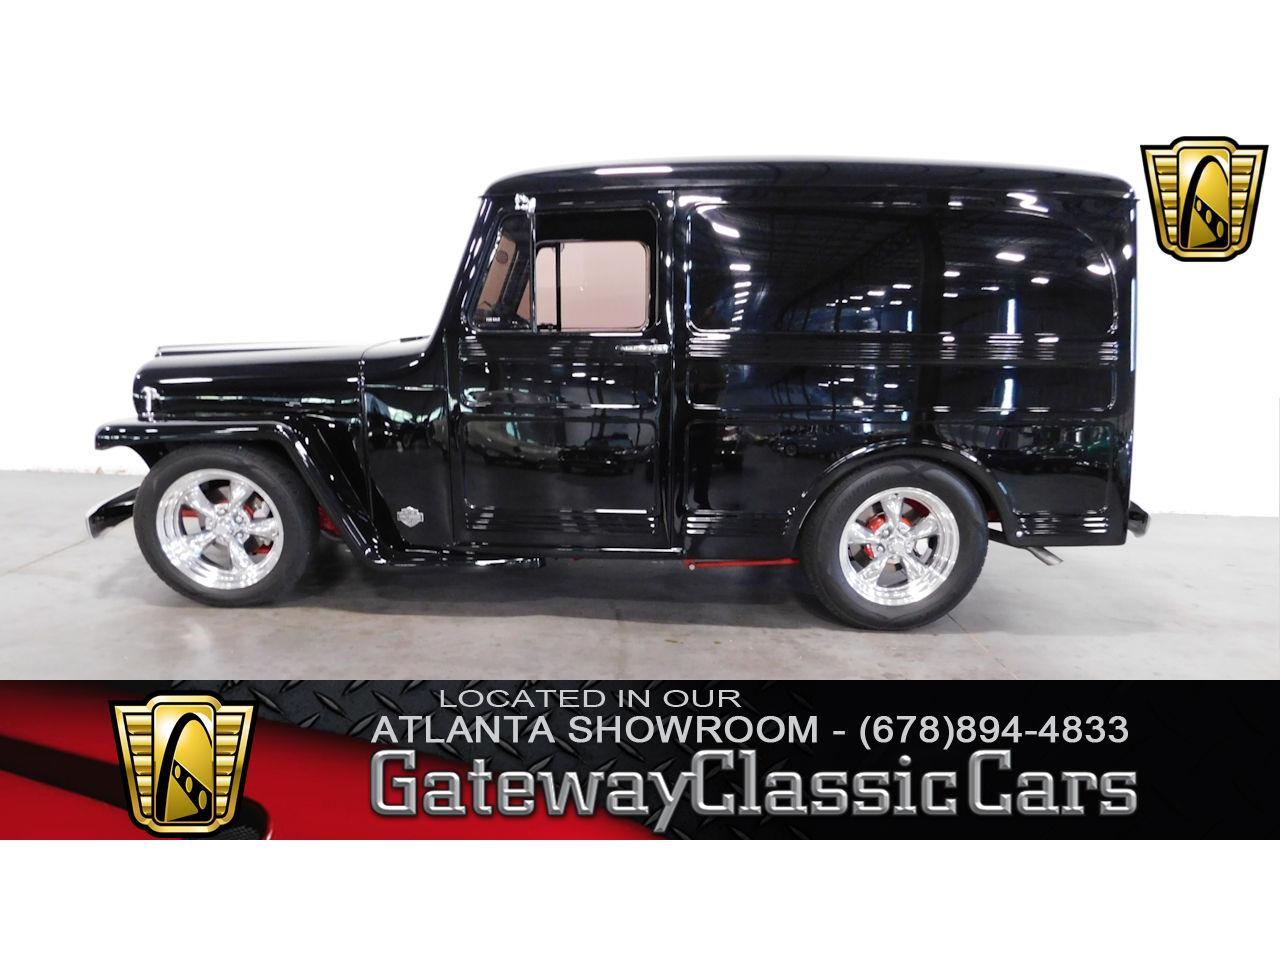 Large Picture of Classic 1952 Sedan - $58,000.00 Offered by Gateway Classic Cars - Atlanta - L8EZ